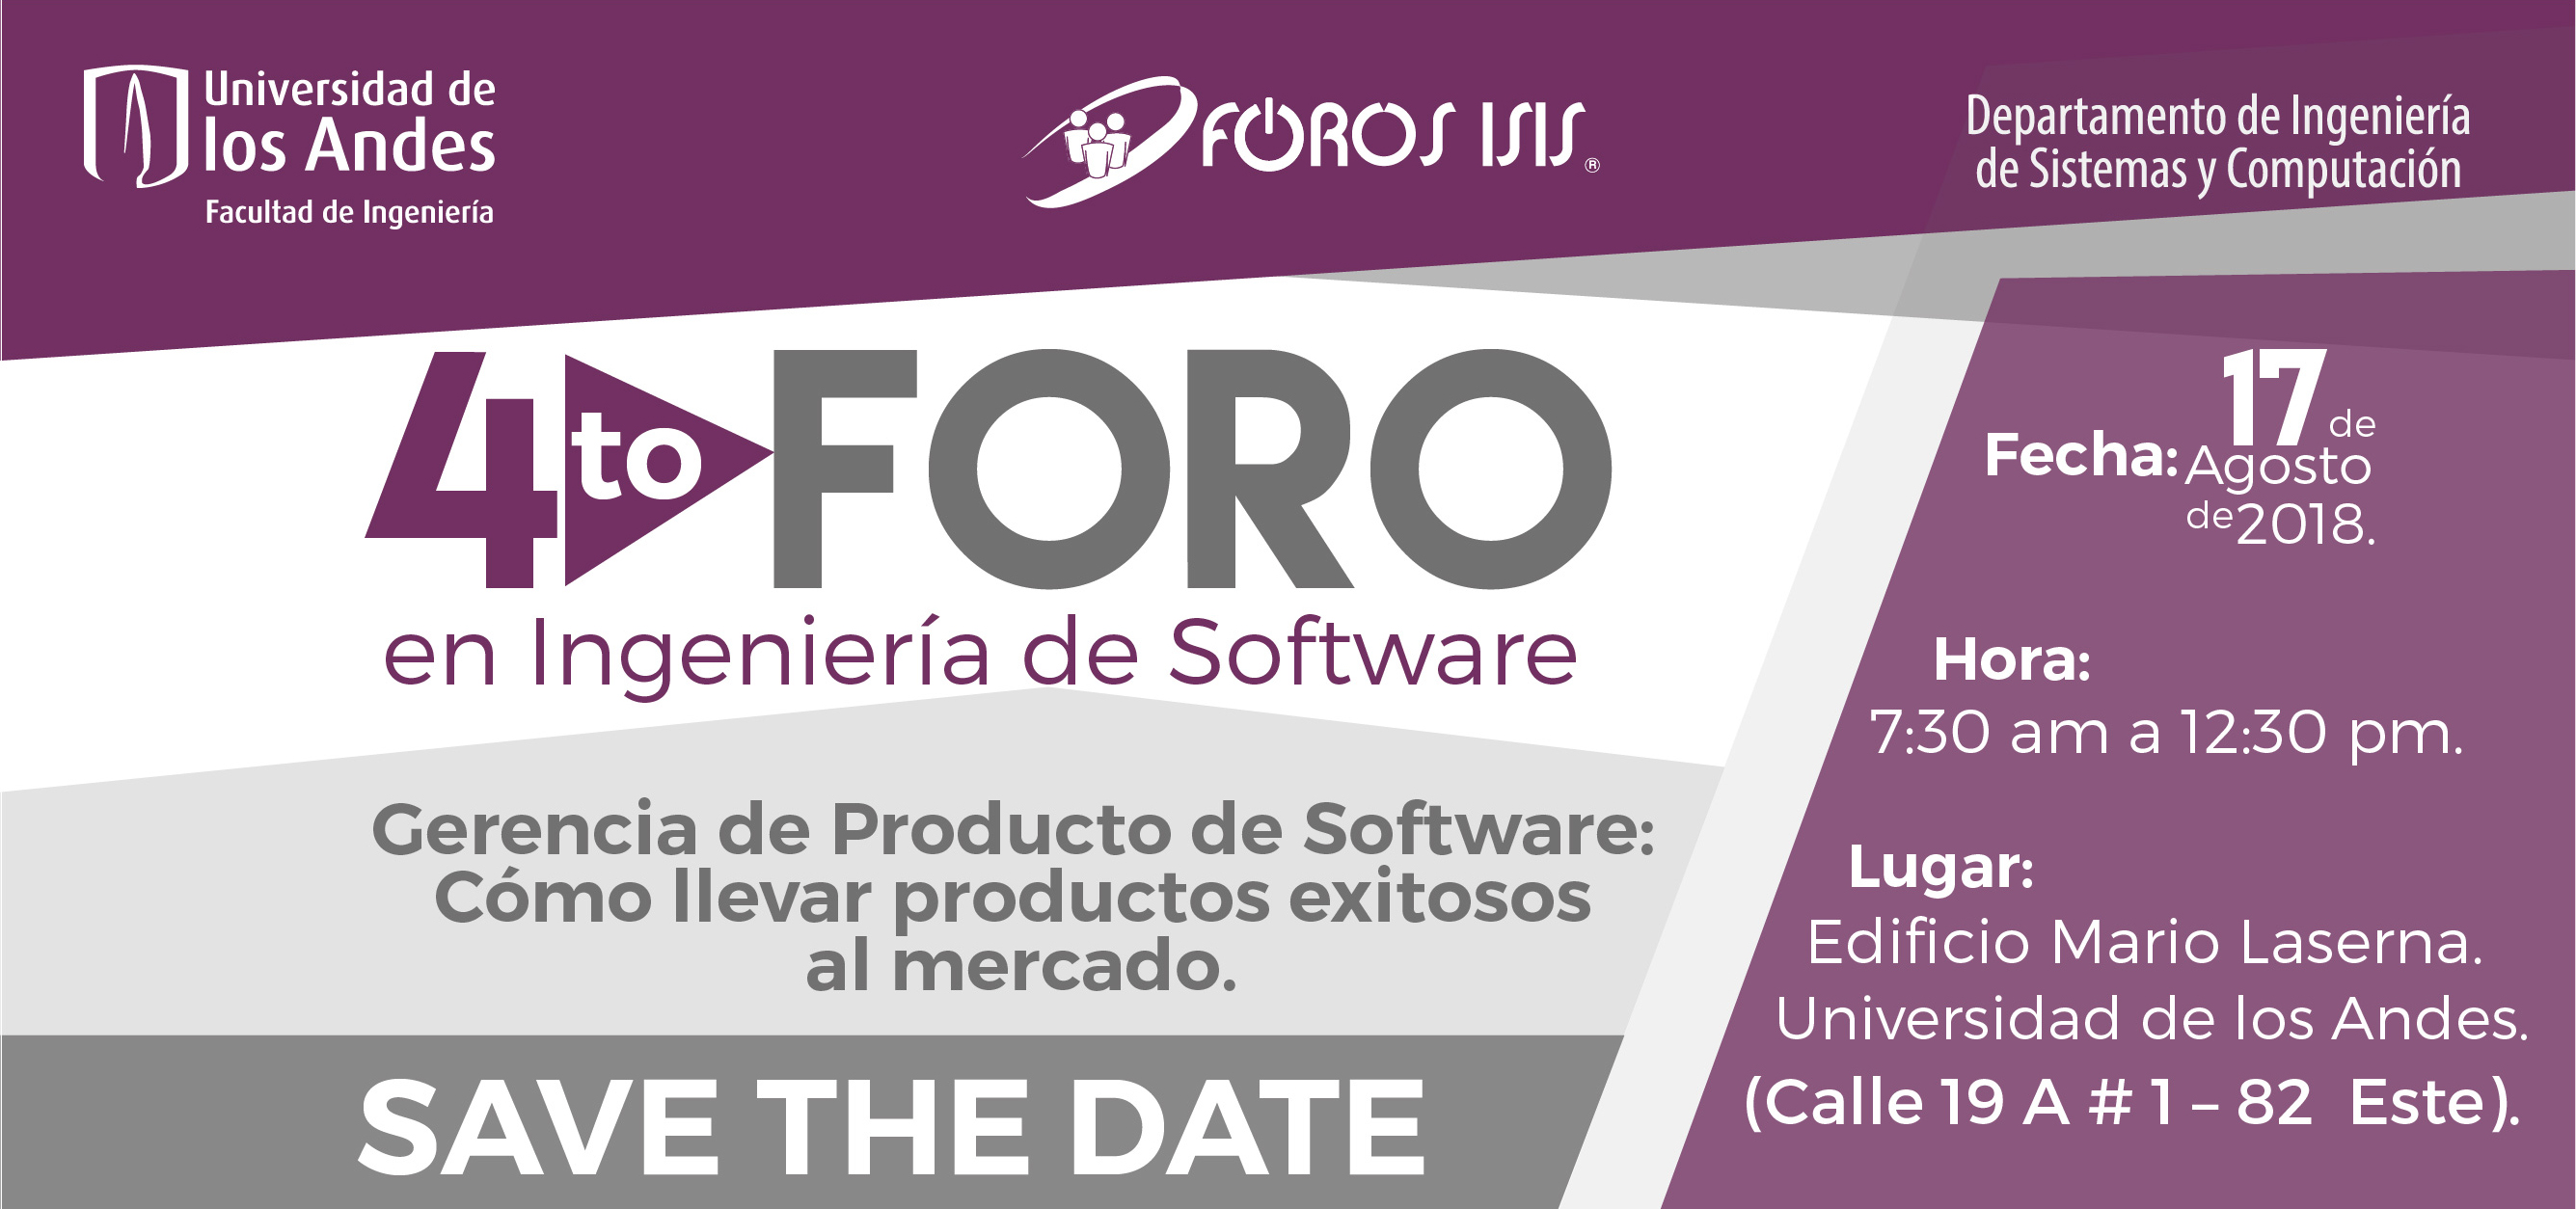 4to_foro_de_ingenieria_de_software_04072018